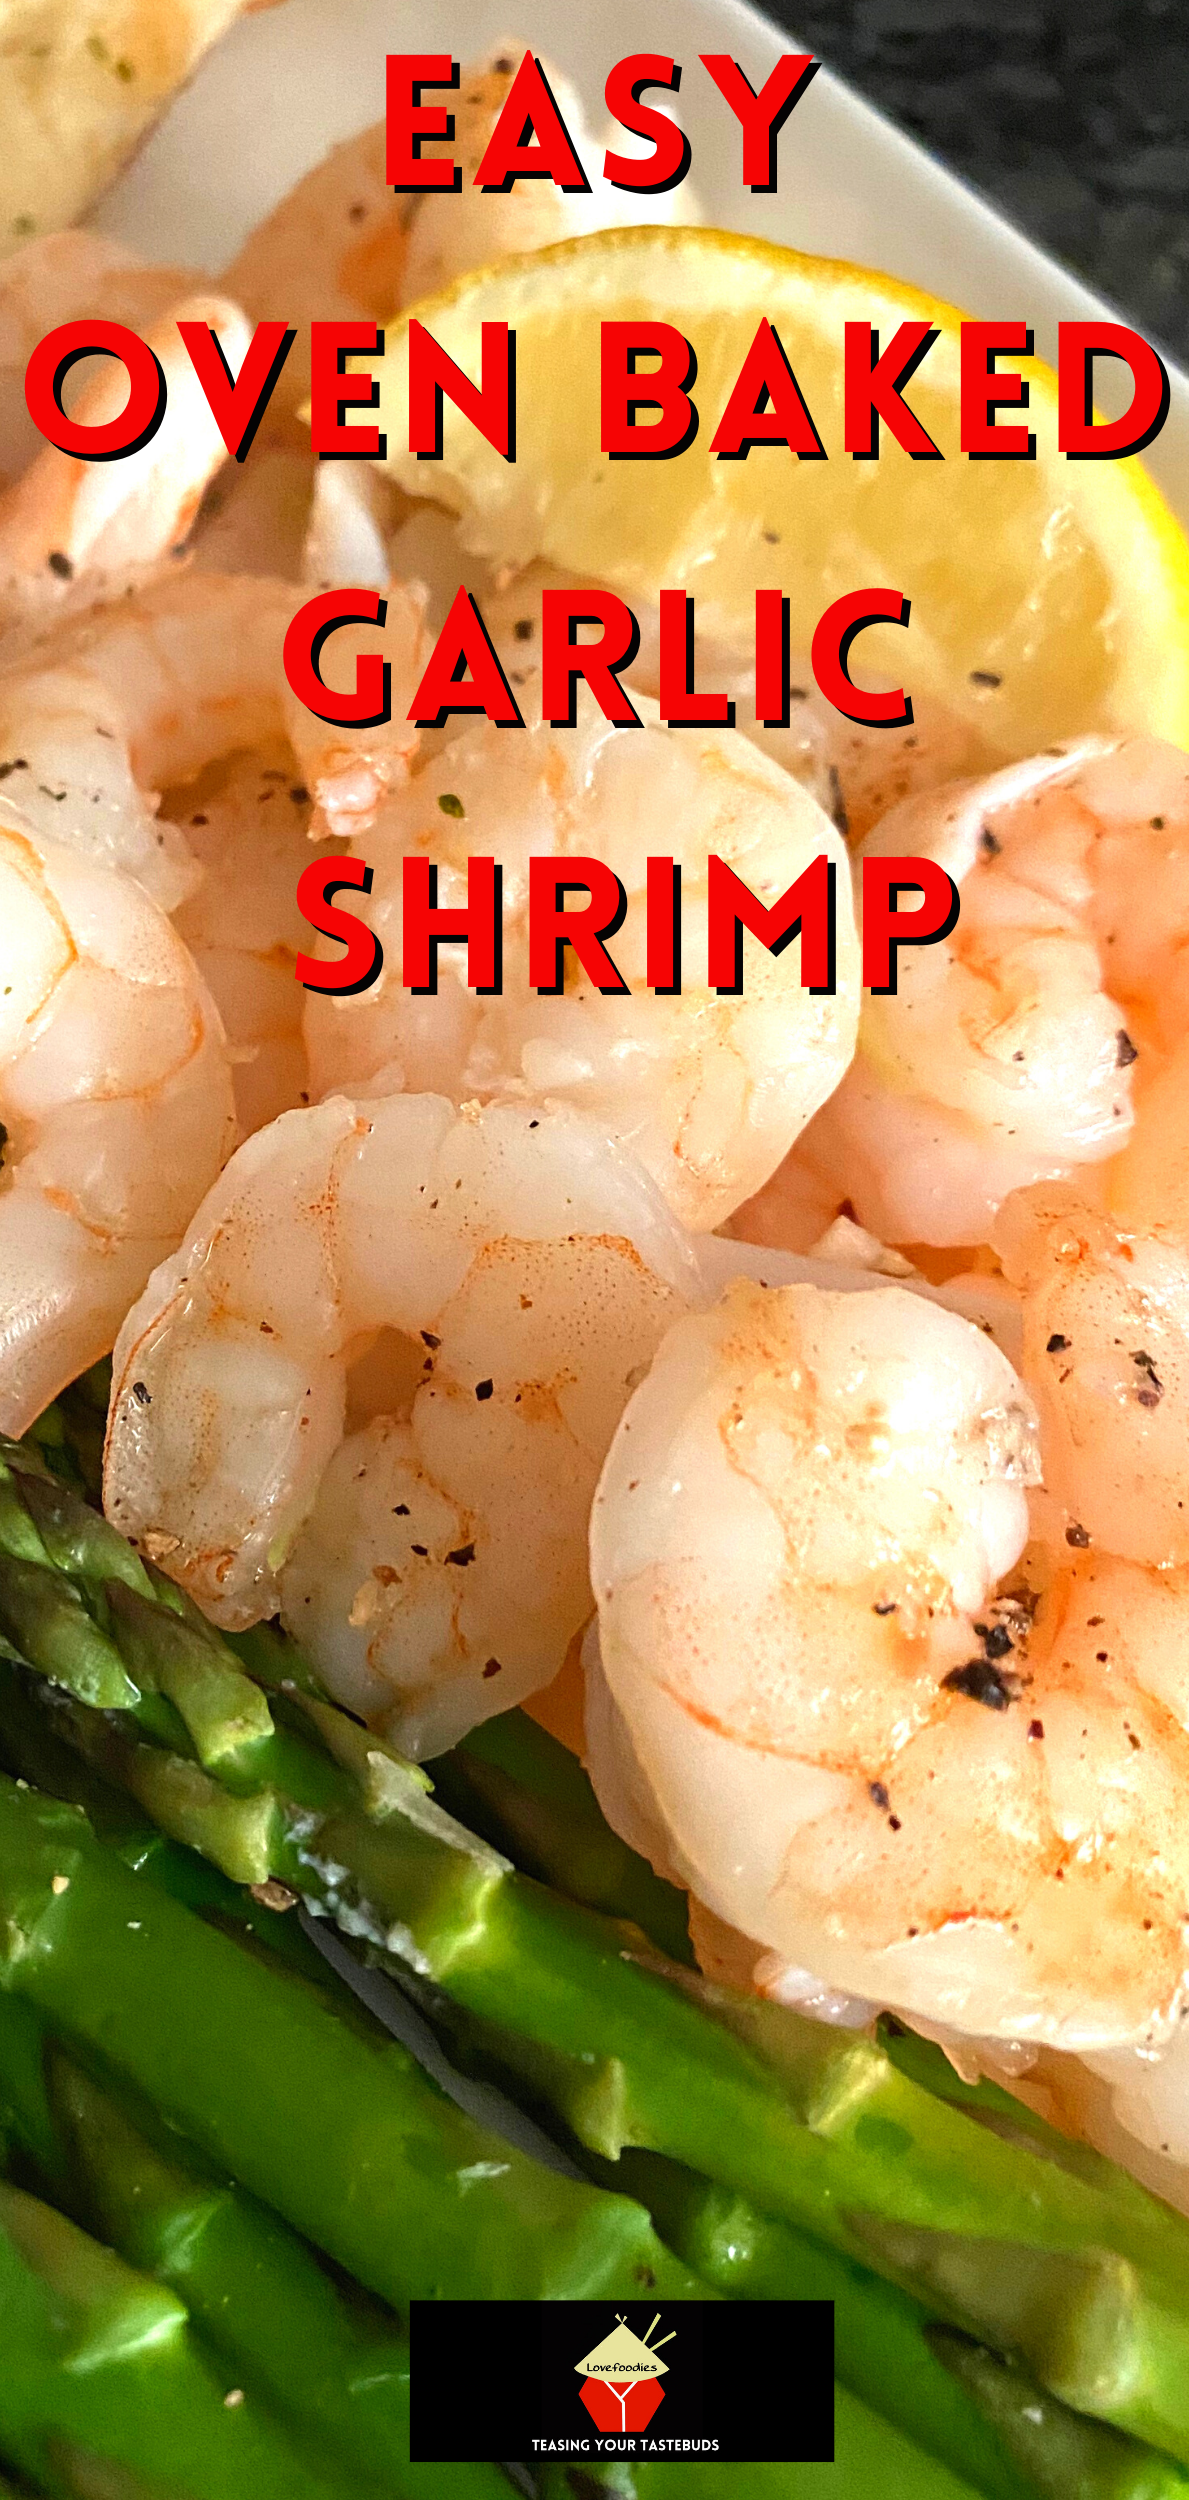 Easy Oven Baked Garlic Shrimp. A quick and easy oven - baked dinner, giving you juicy, perfectly cooked shrimp, infused with garlic and lemon.